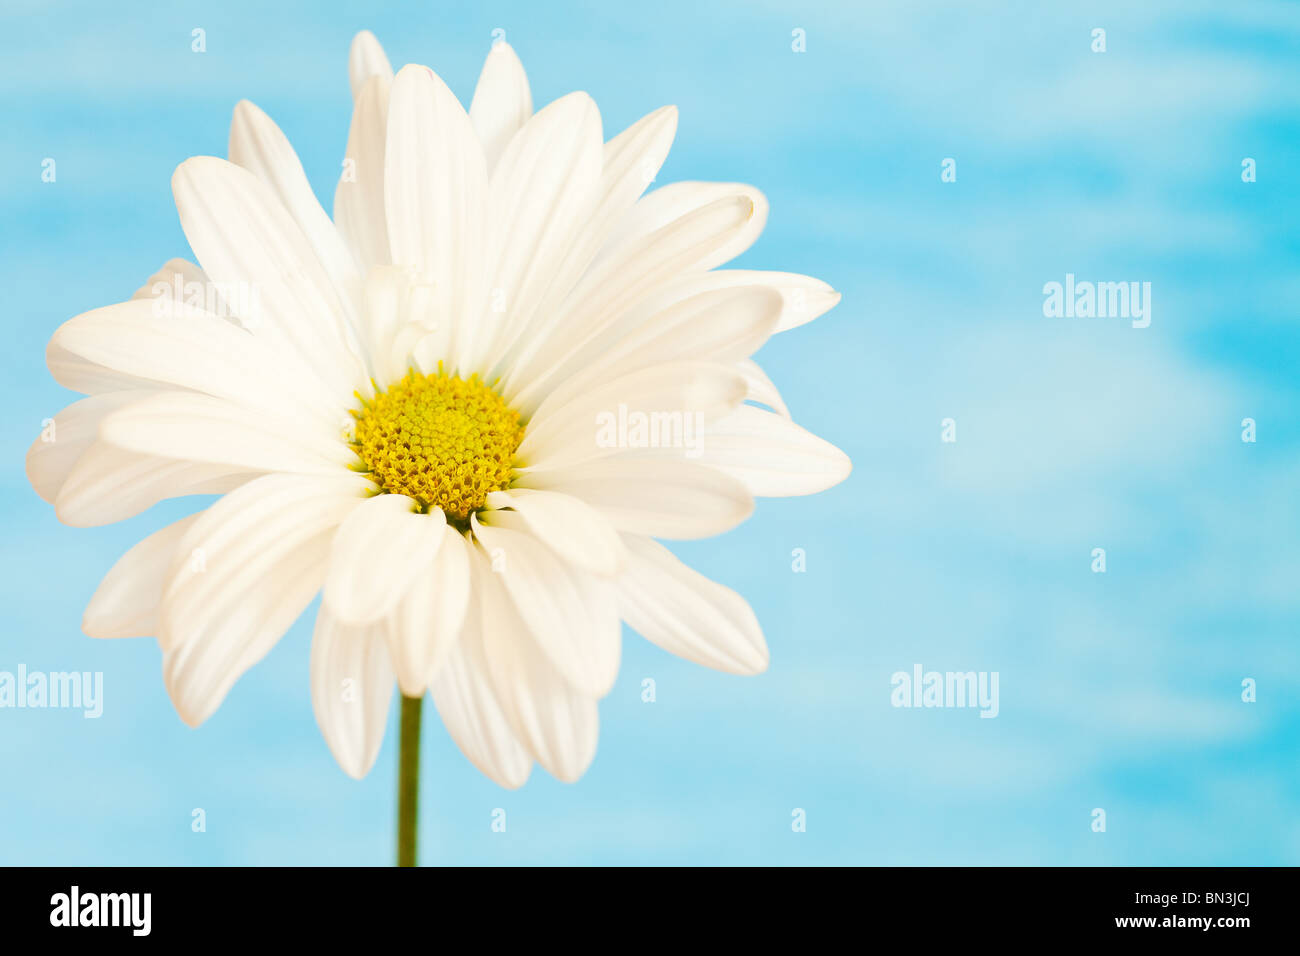 white and yellow daisy on a handpained watercolor background - Stock Image